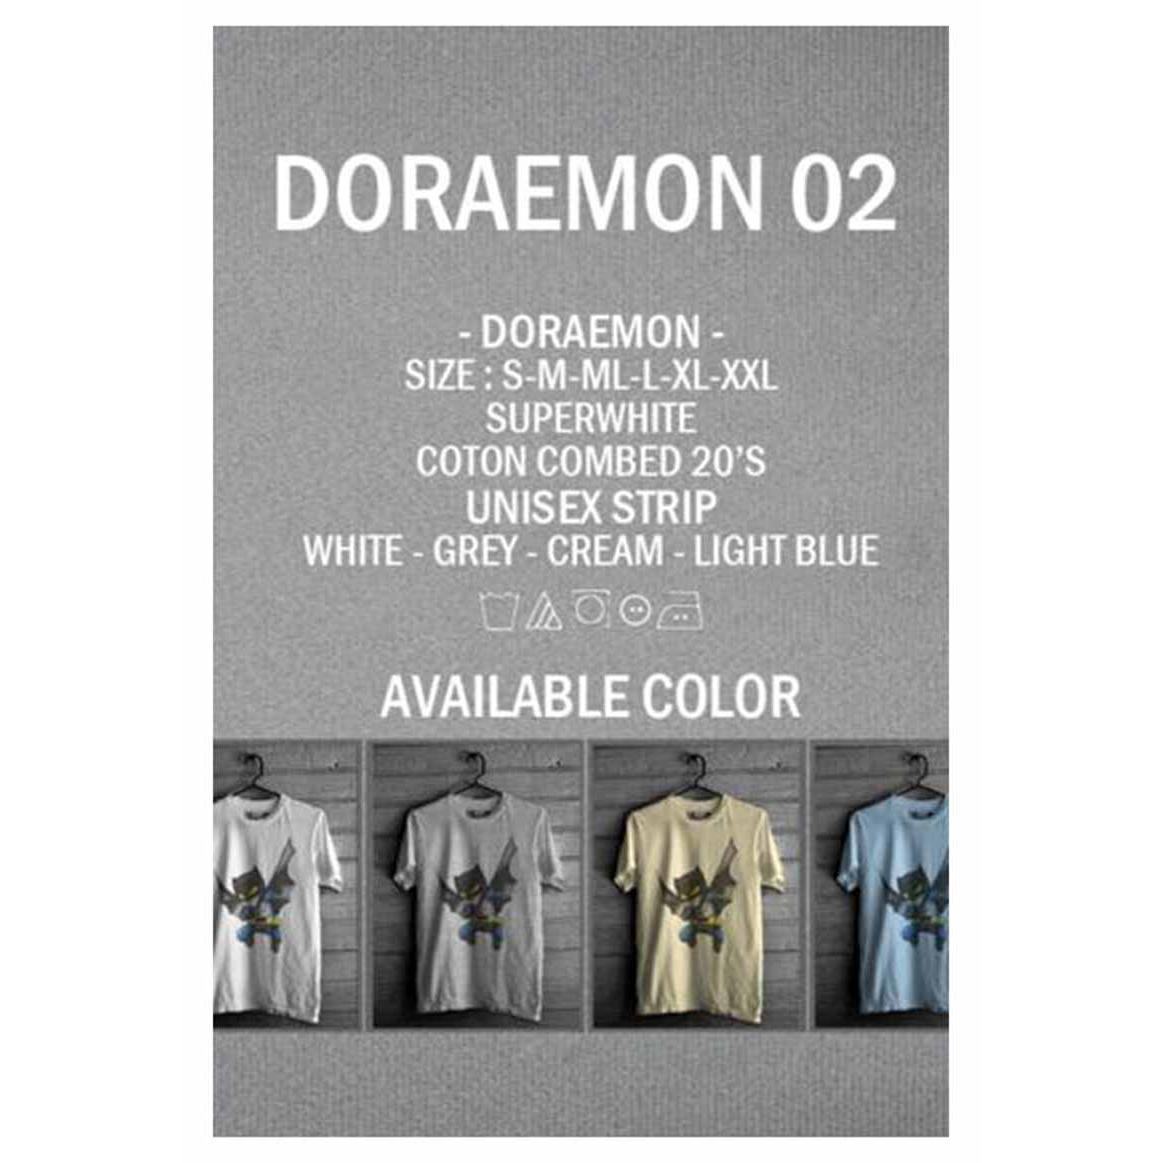 Ordinal Doraemon 02 T Shirt Elevenia Carvil Sandal Gunung Men Amazon Gm Black Olive Hijau Tua 41